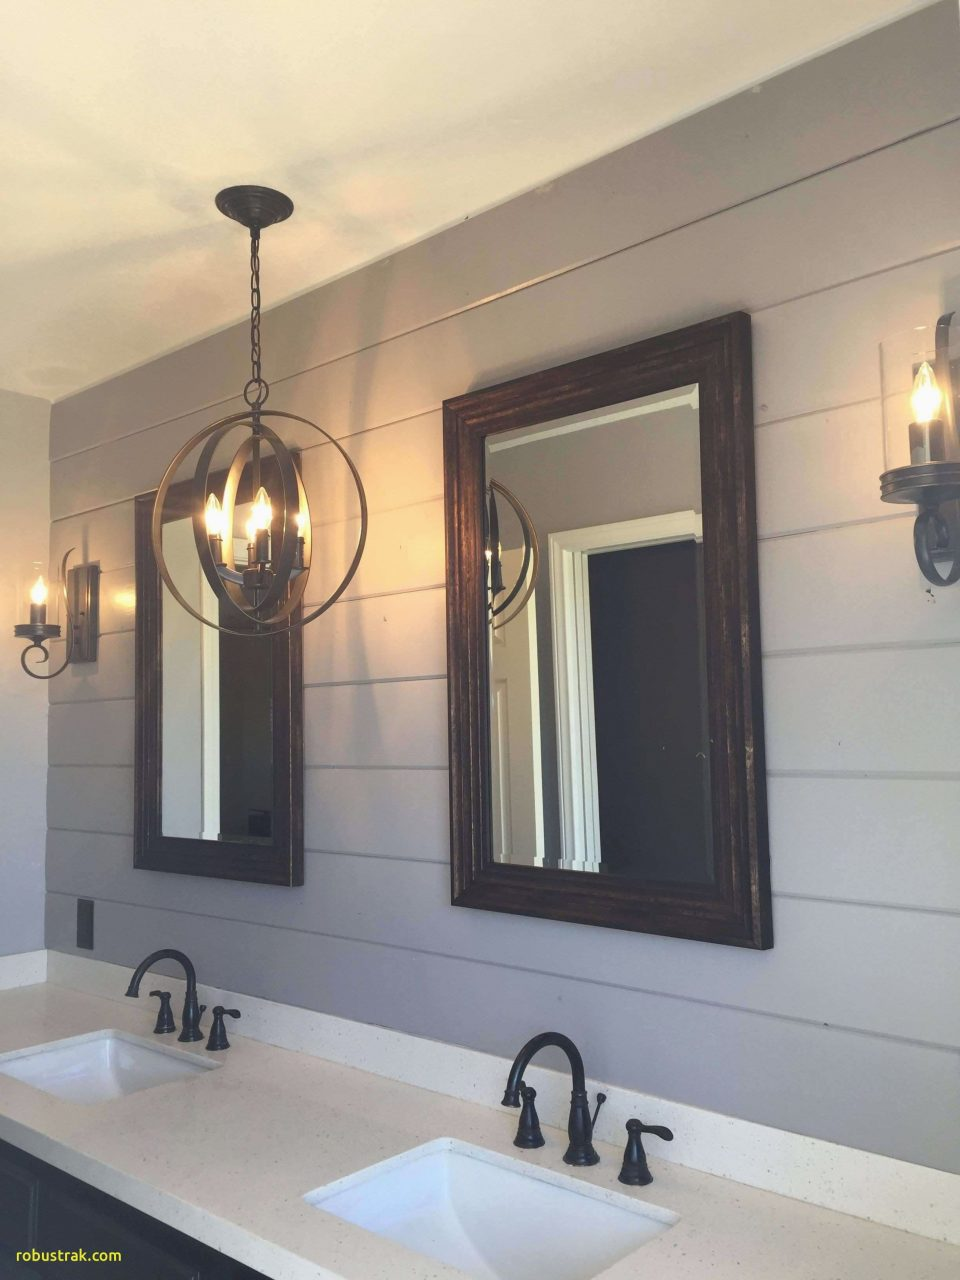 Most Beautiful Bathrooms The World Cosmosindesign Fresh Mirrors Tune